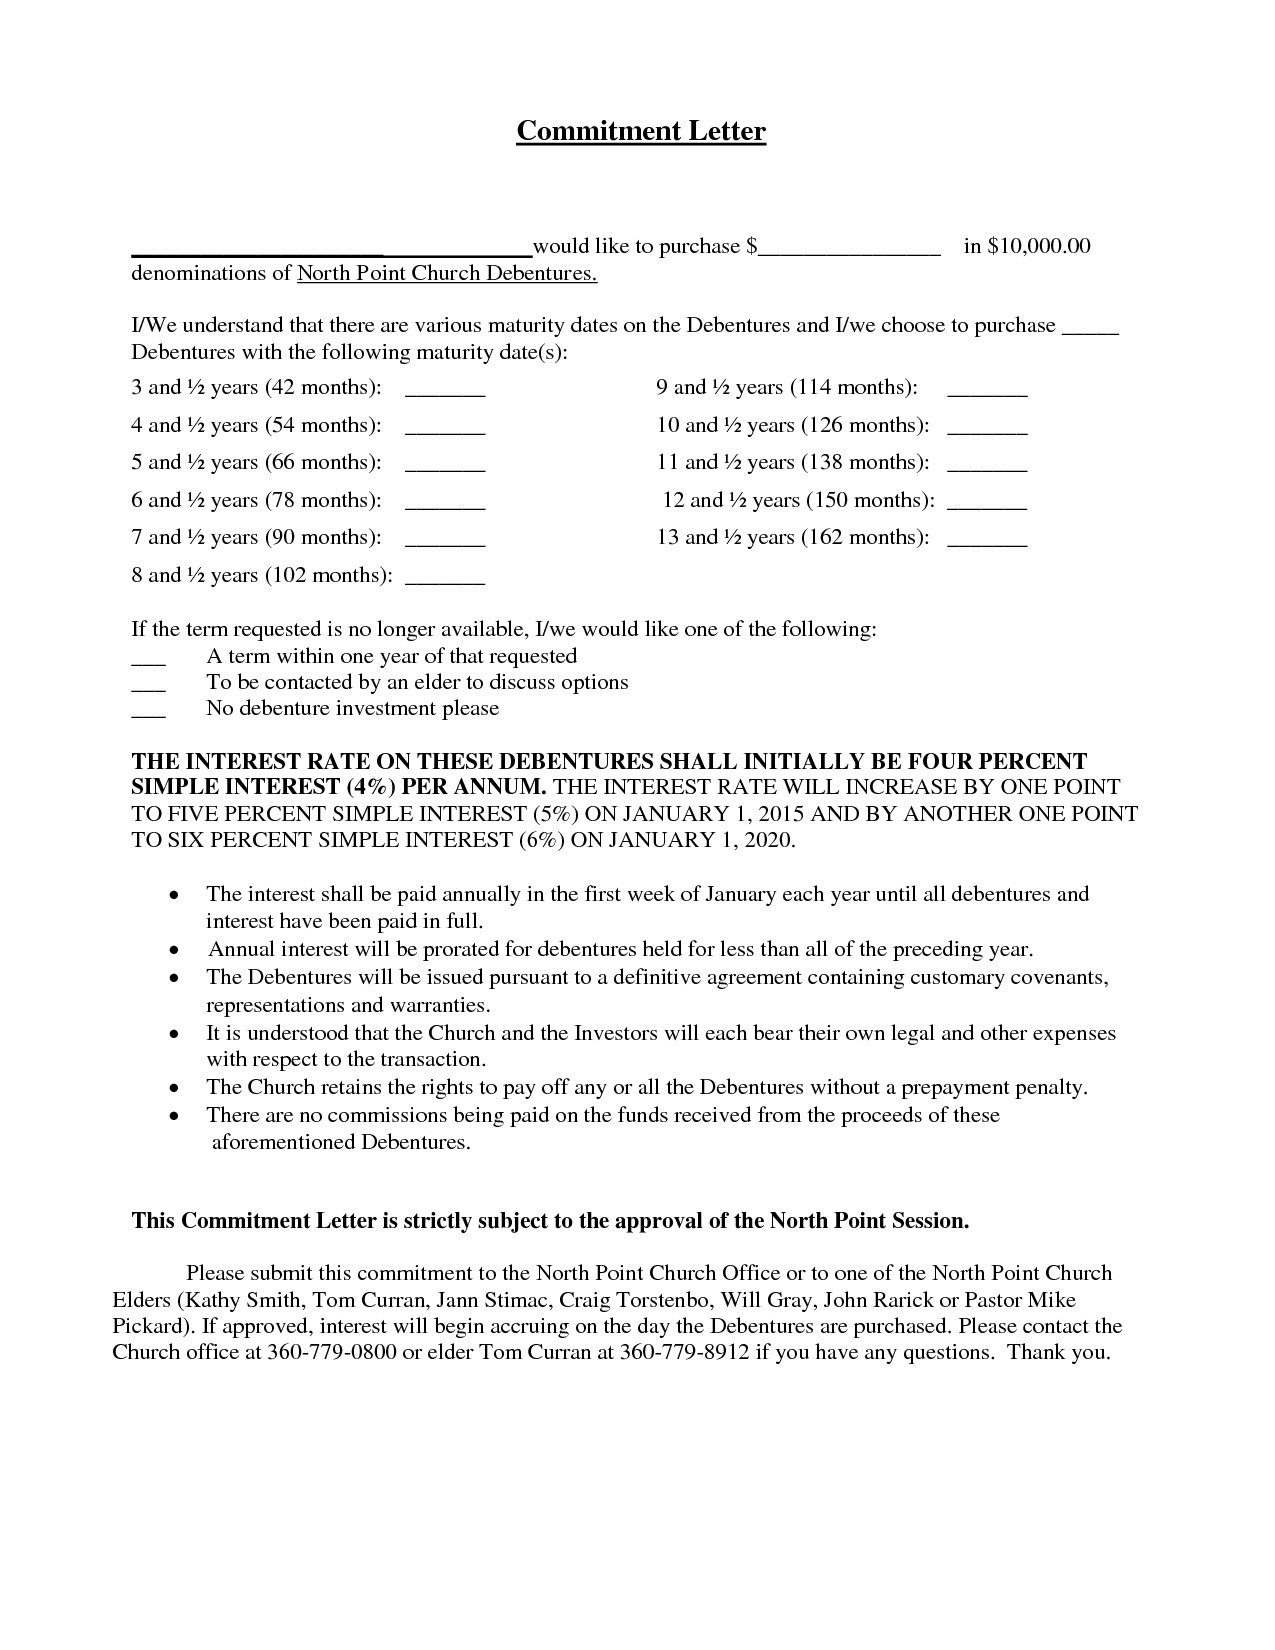 Mortgage Pre Approval Letter Template - Job Letter for Mortgage New Job Mitment Letter Valid Mortgage Loan